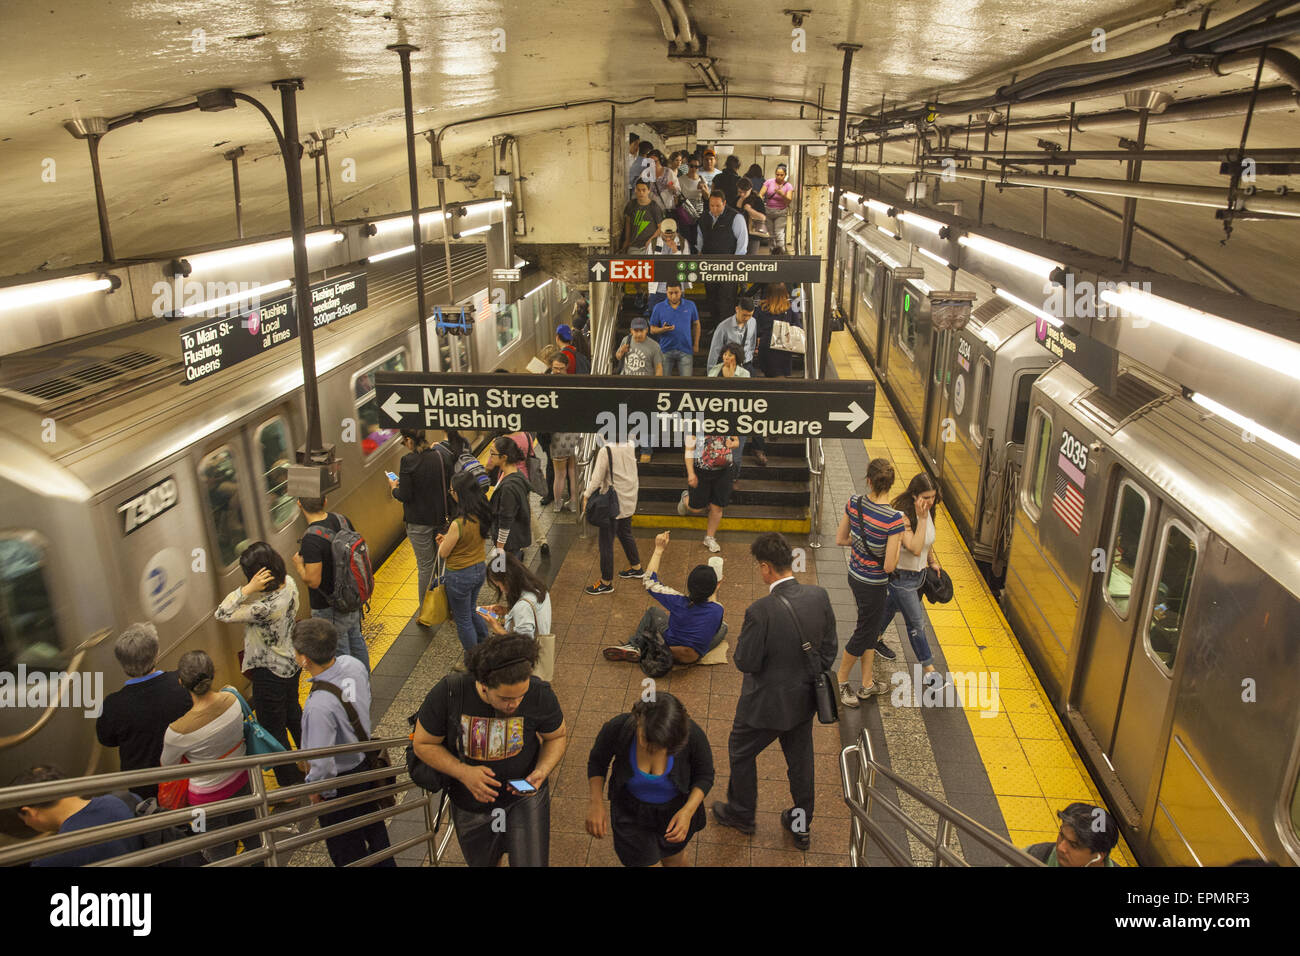 Commuters going home at the evening rush hour on the Grand Central, 42nd St. subway station platform. - Stock Image